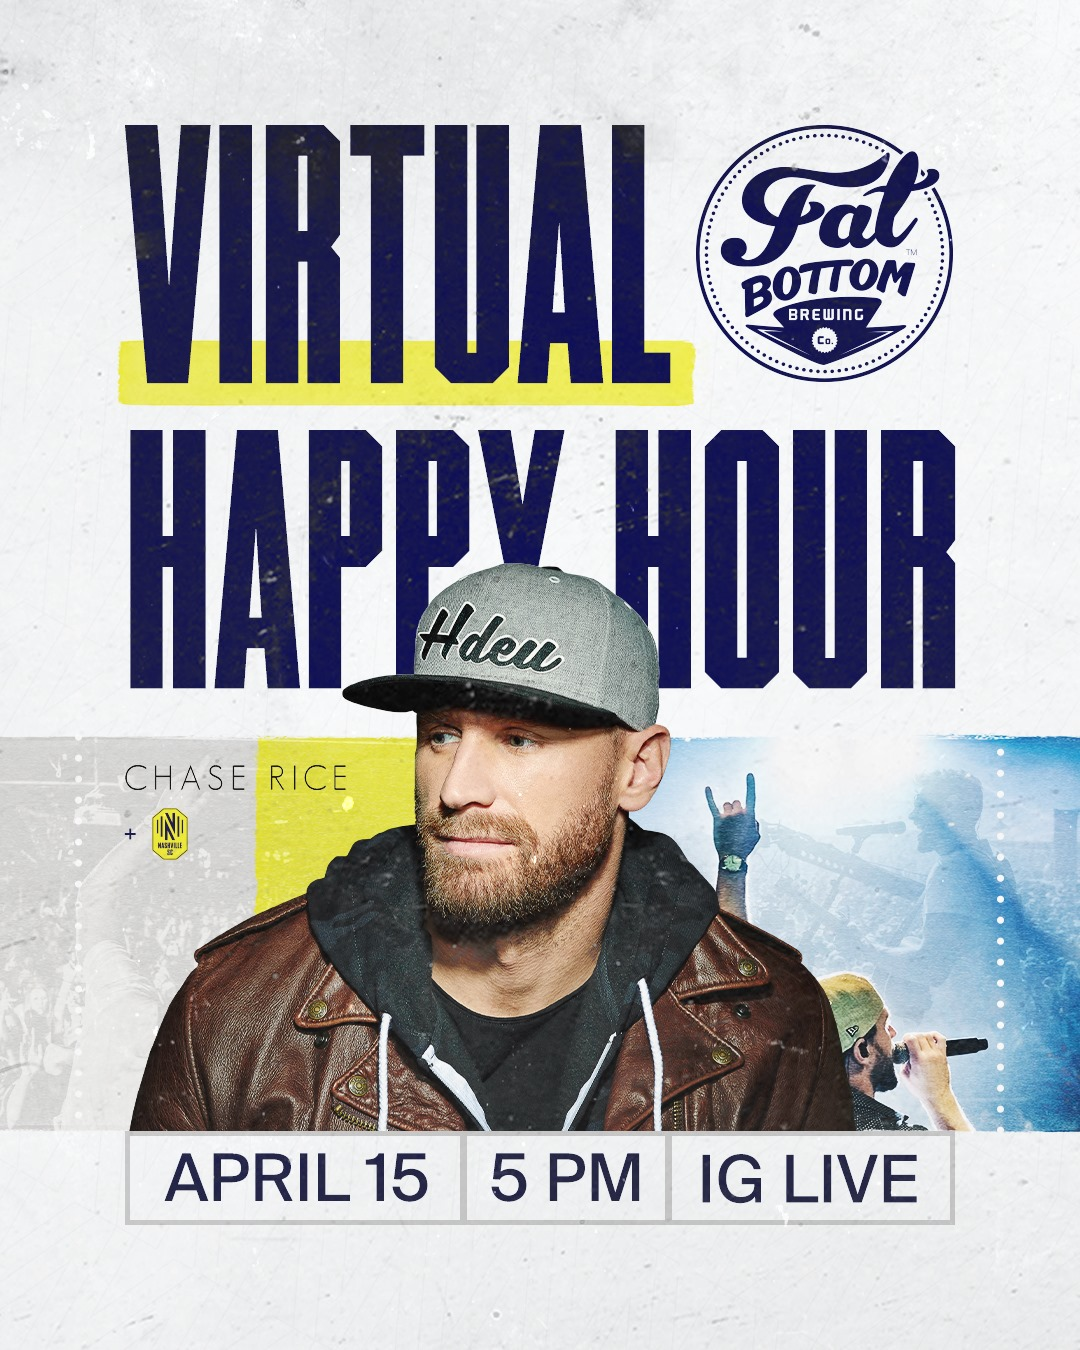 Nashville SC for a Fat Bottom Brewing Virtual Happy Hour with Chase Rice